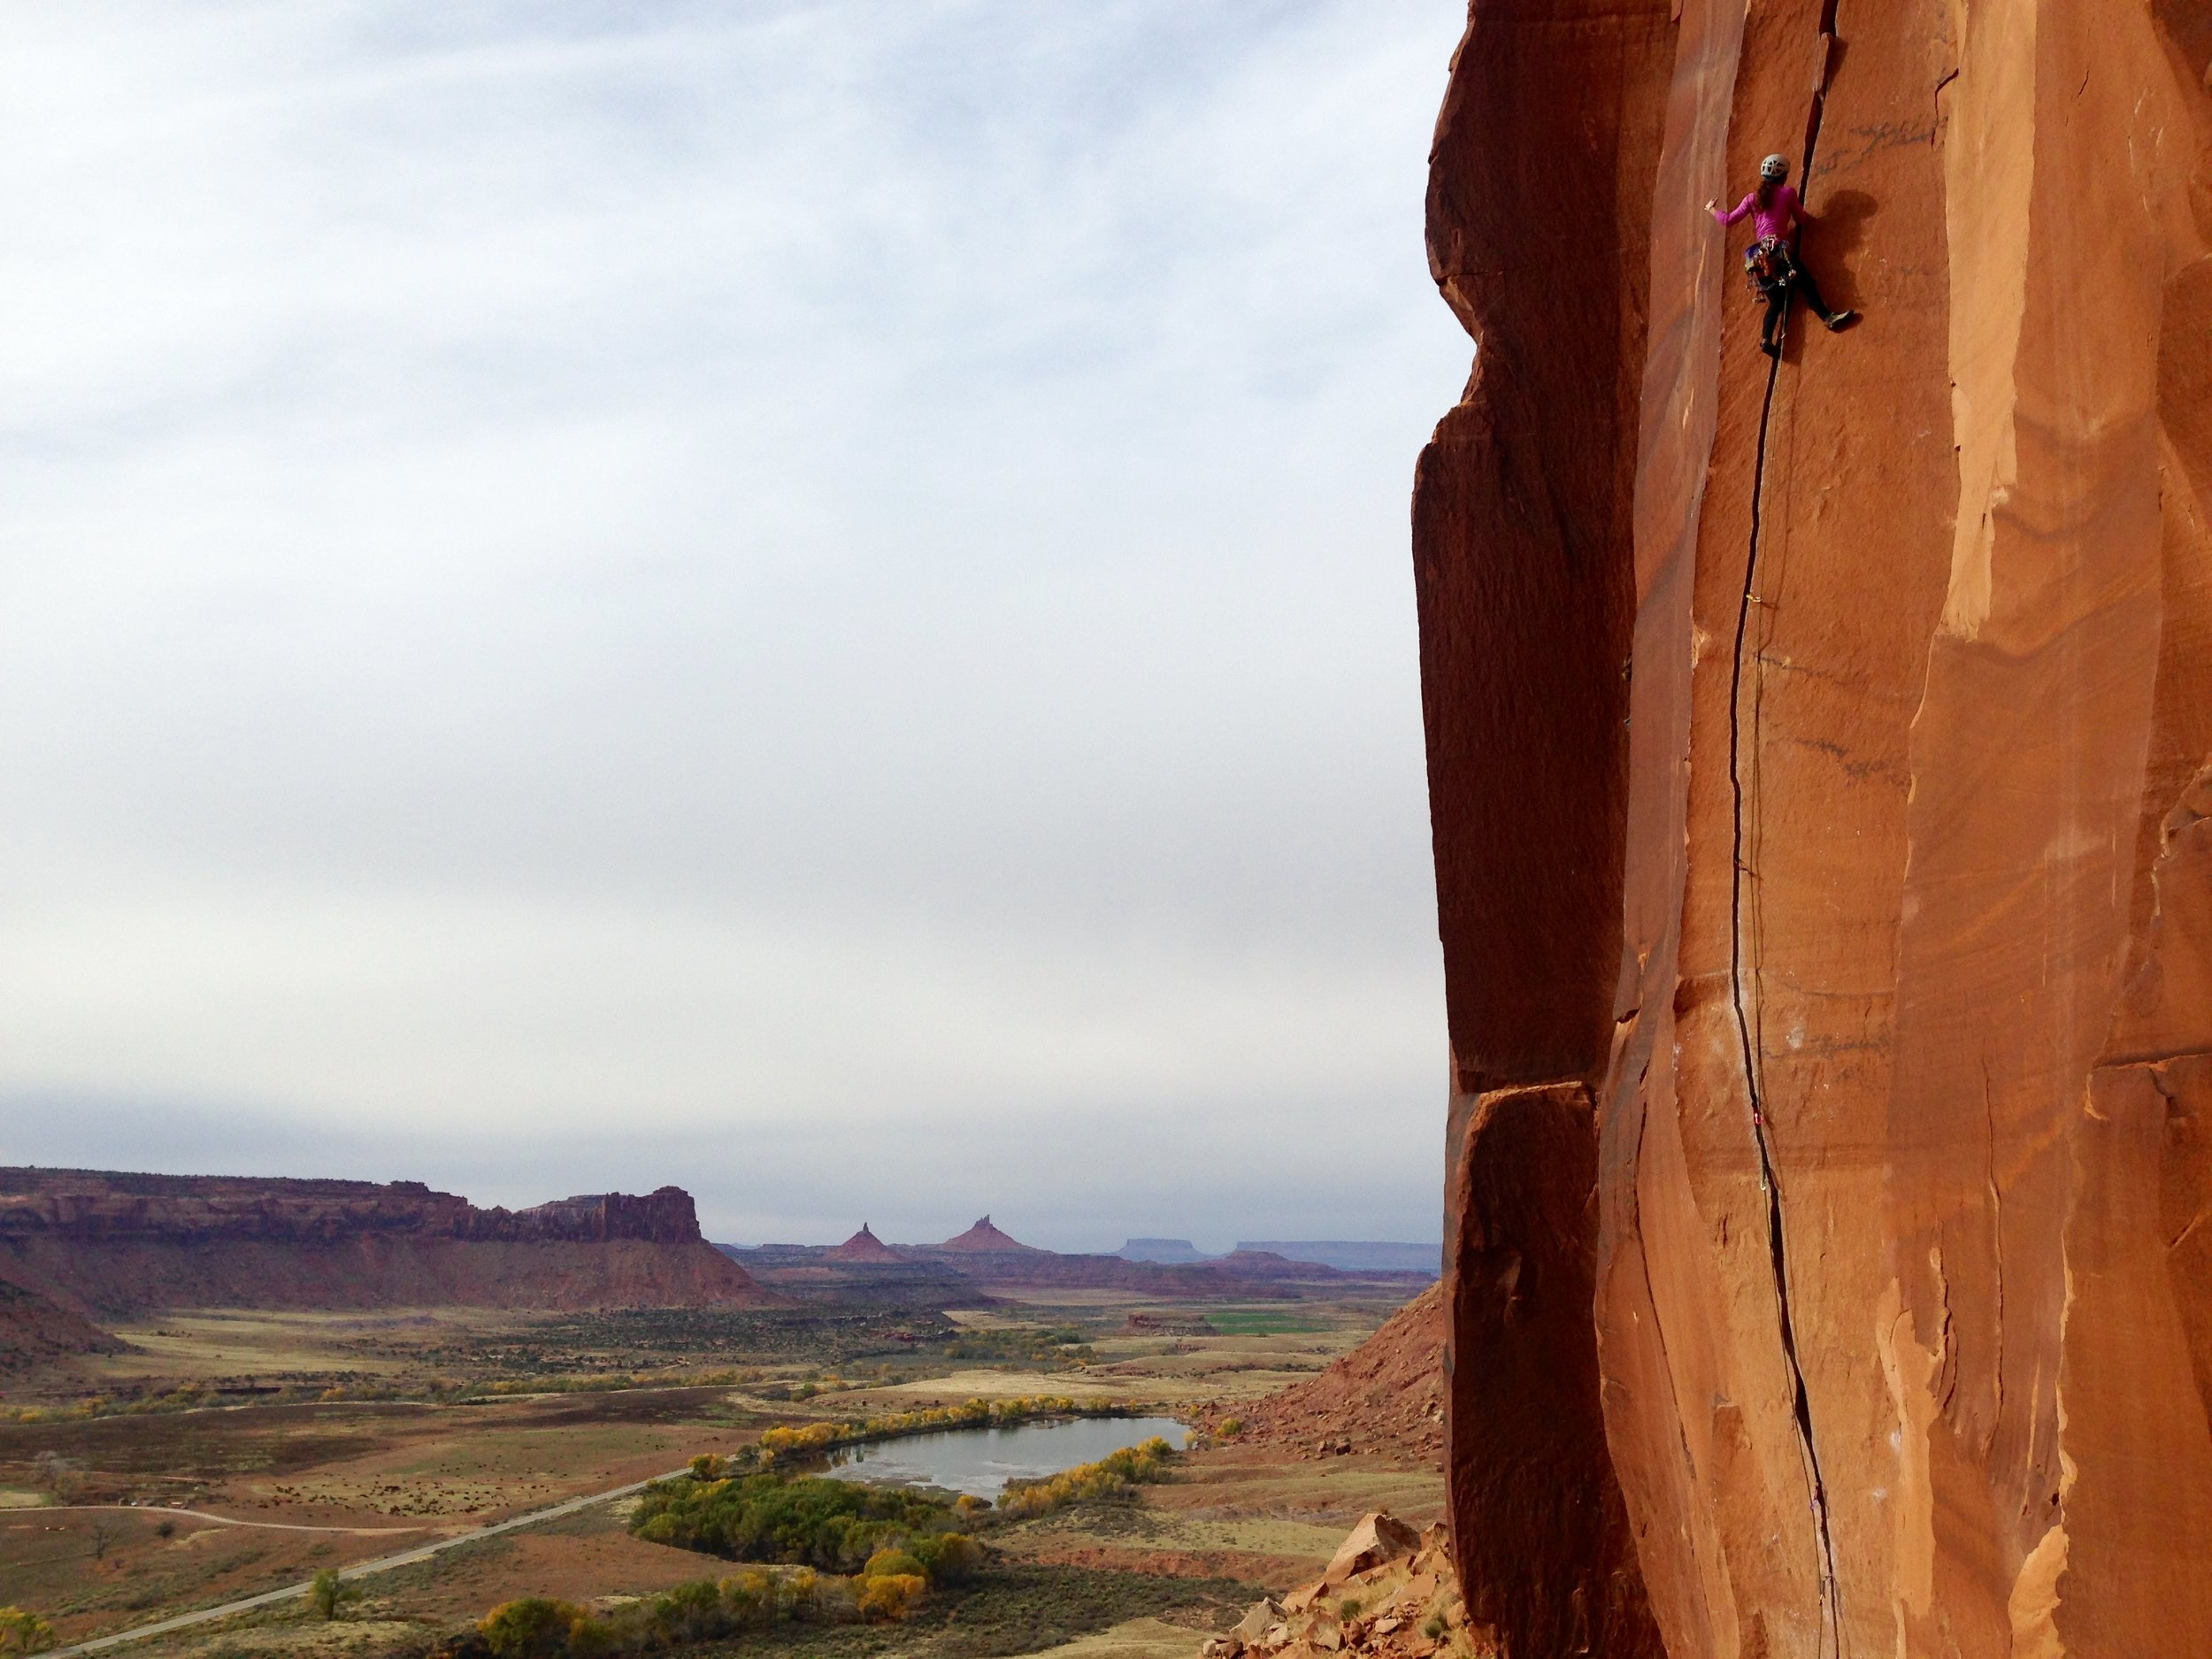 Erin climbing in Indian Creek, Utah, traditional territory of Navajo, Hopi, Zuni, Ute Mountain Ute, & Uintah Ouray Ute.